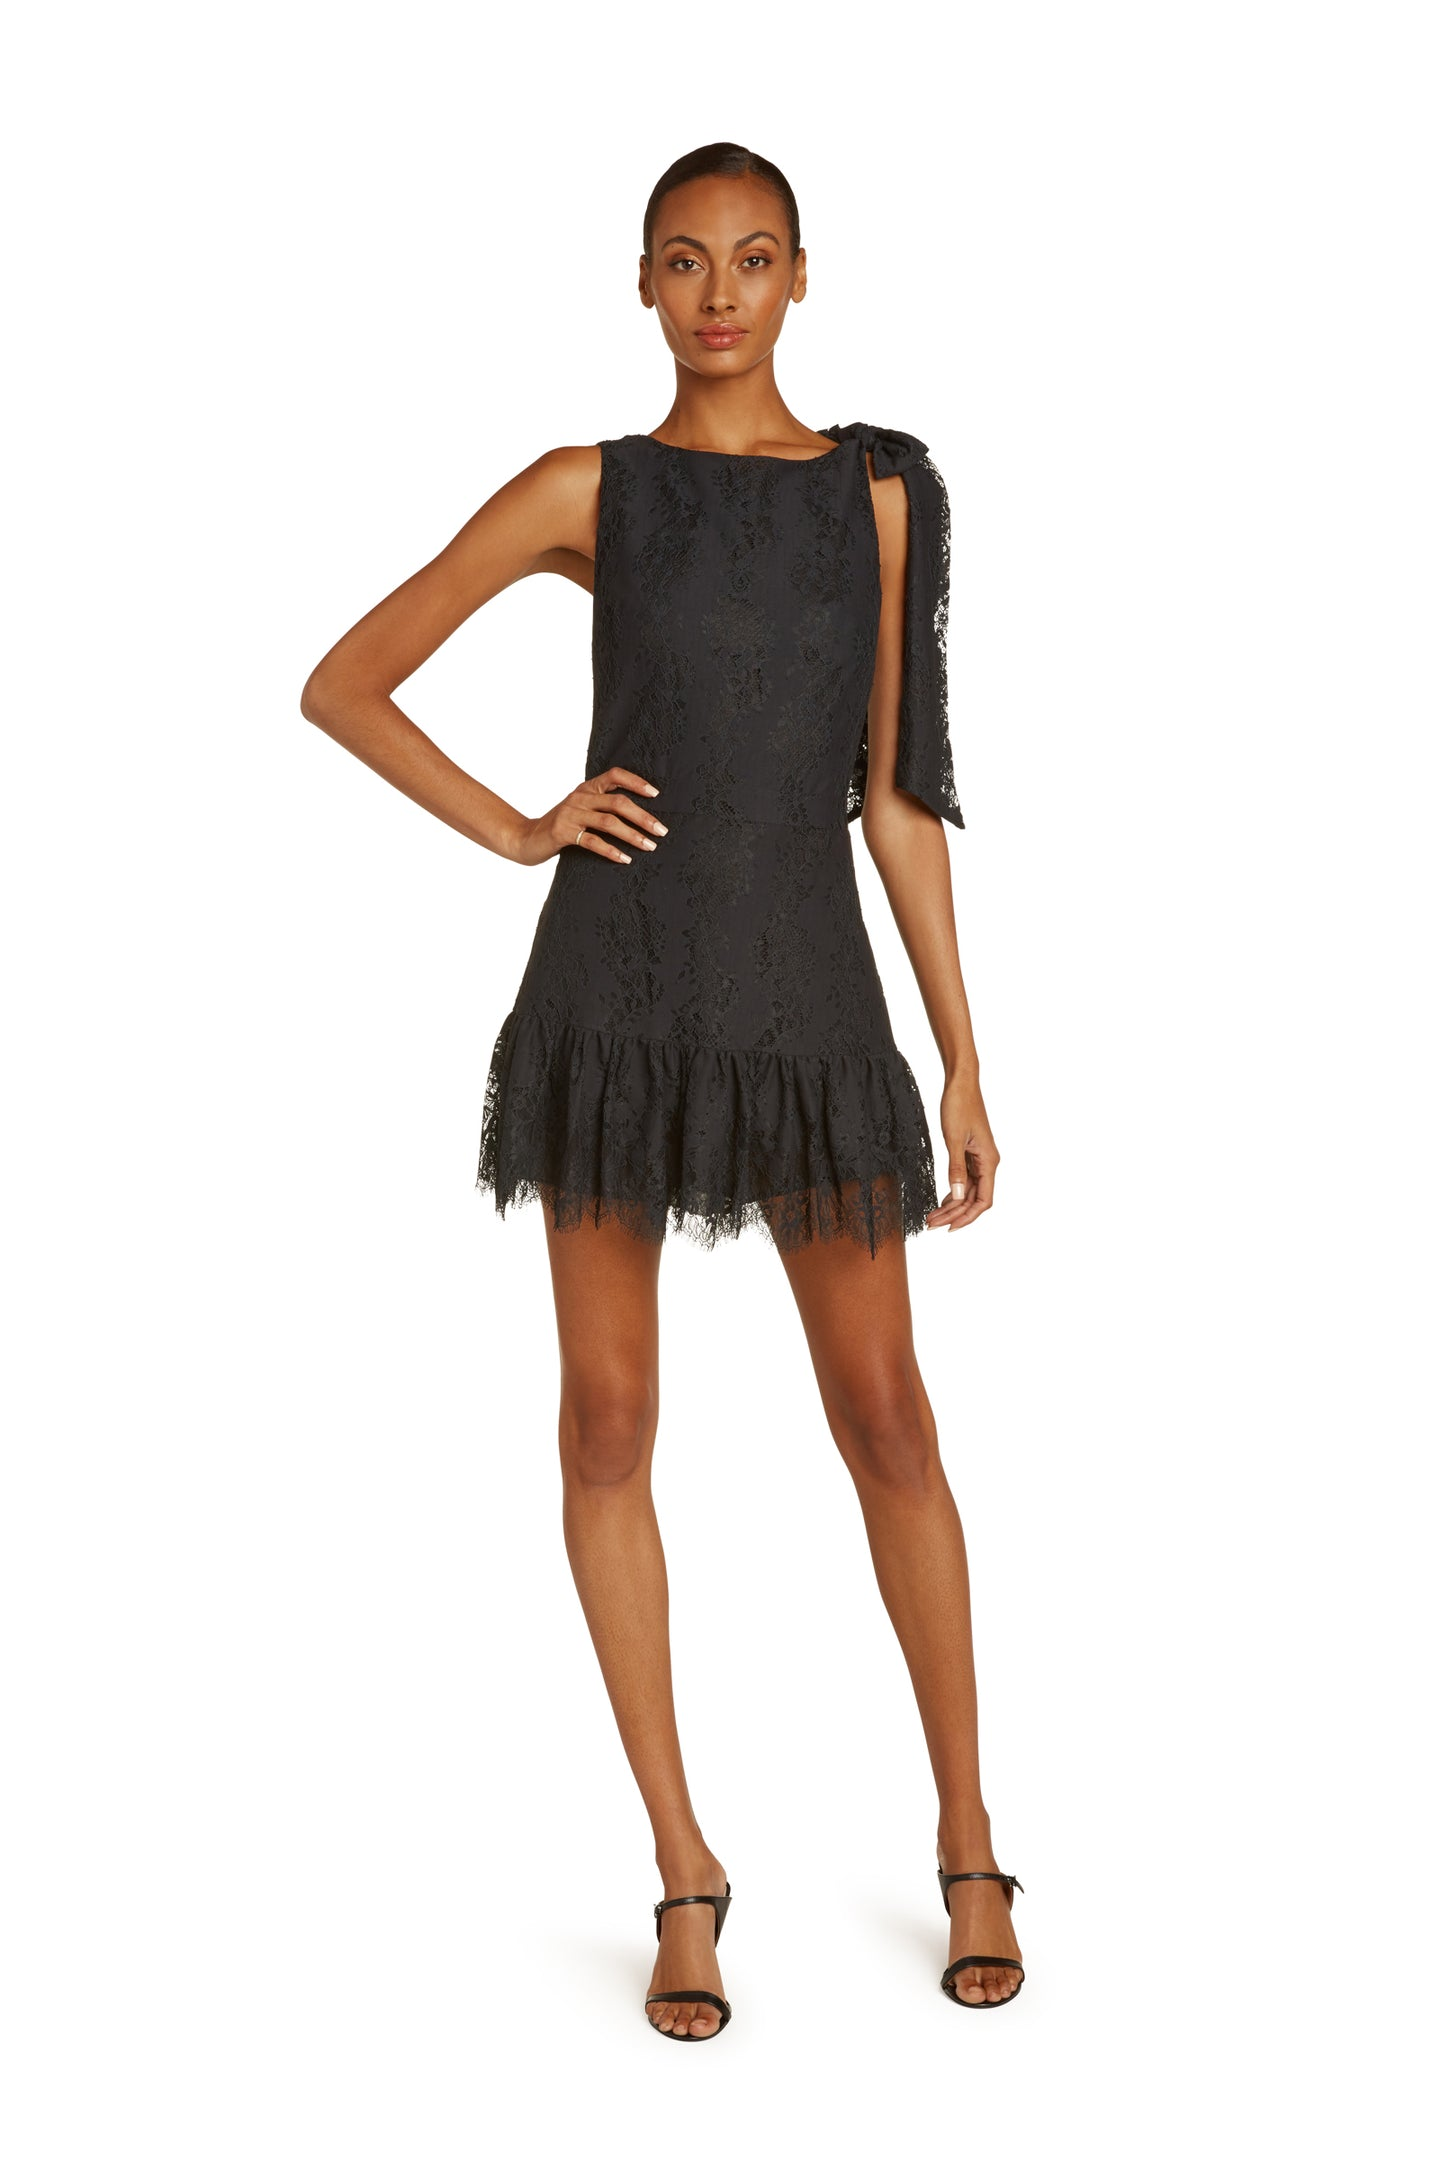 Perla Cotton Lace Mini Dress In Black